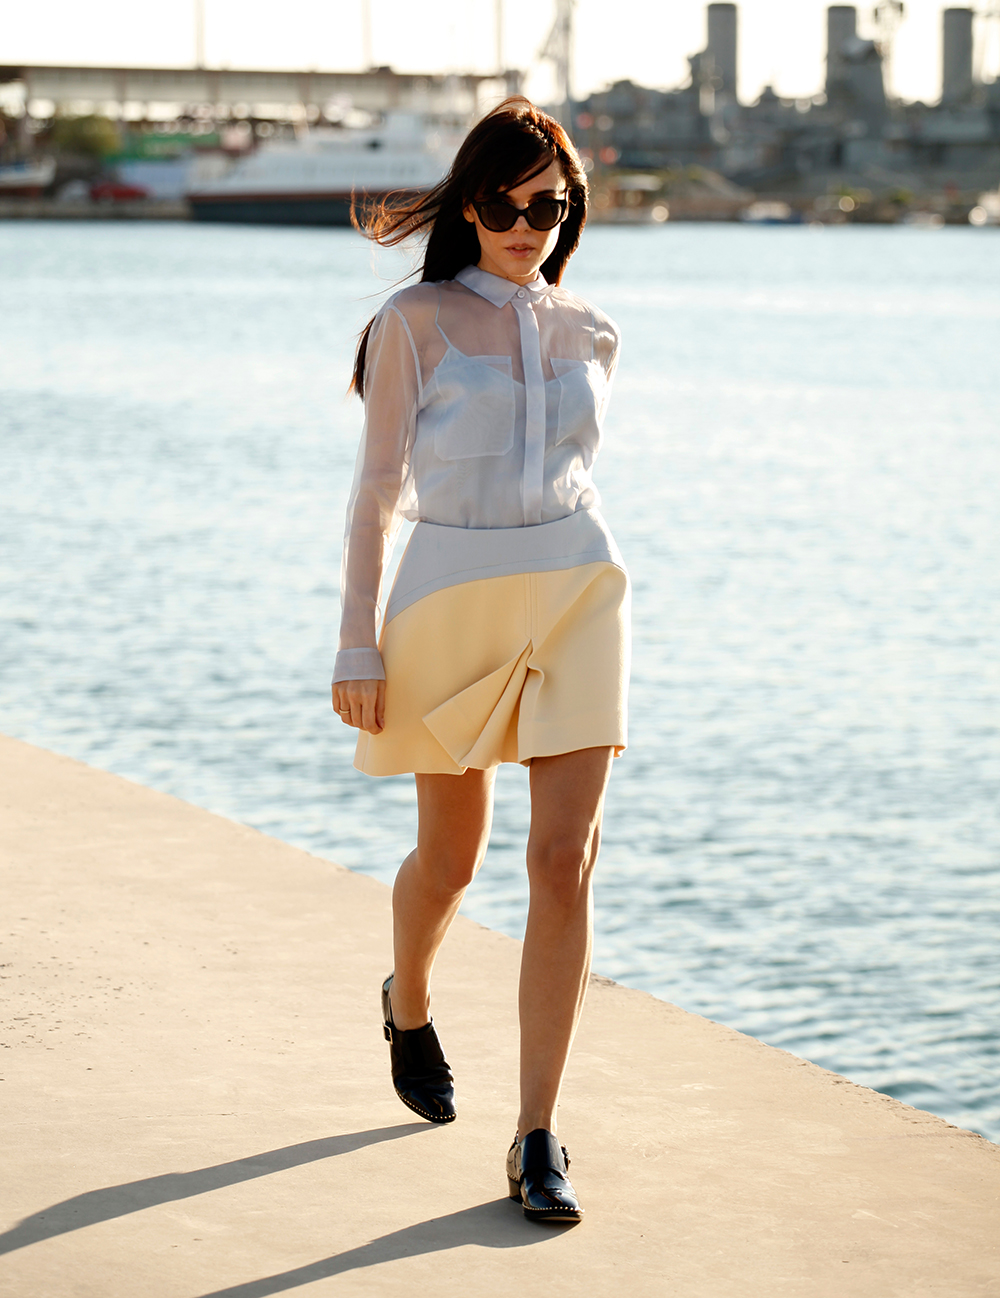 Style Heroine Wearing Burberry Prorsum Shirt, Miu Miu Skirt And Jimmy Choo Waffle Loafers And Sunglasses